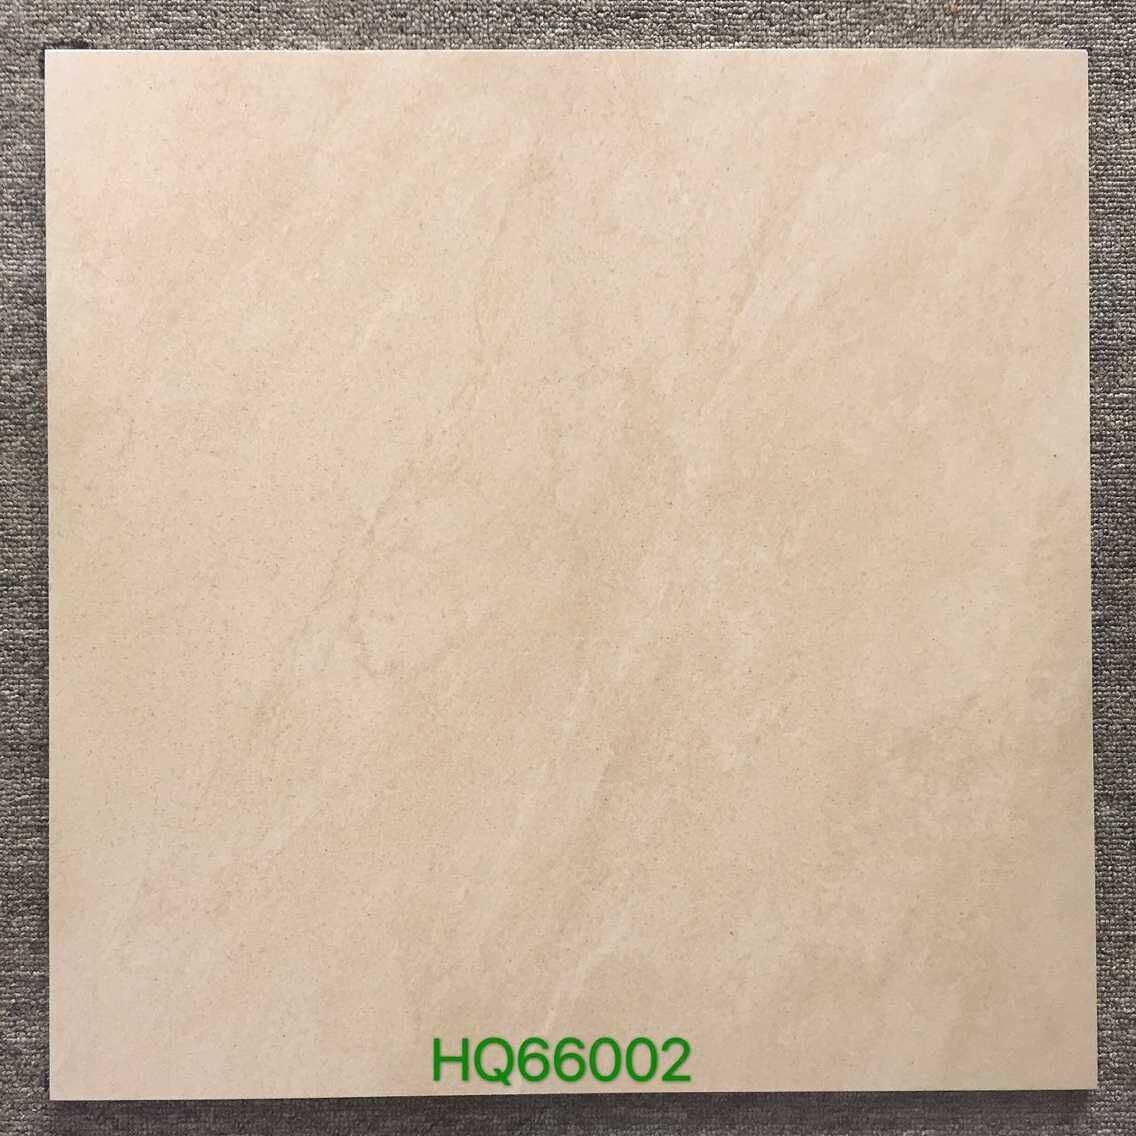 Sunwood glazed ceramic floor tile page 3 home flooring ideas china 60x60cm glazed ceramic floor tiles hq6002 china ceramic china 60x60cm glazed ceramic floor tiles hq6002 doublecrazyfo Gallery